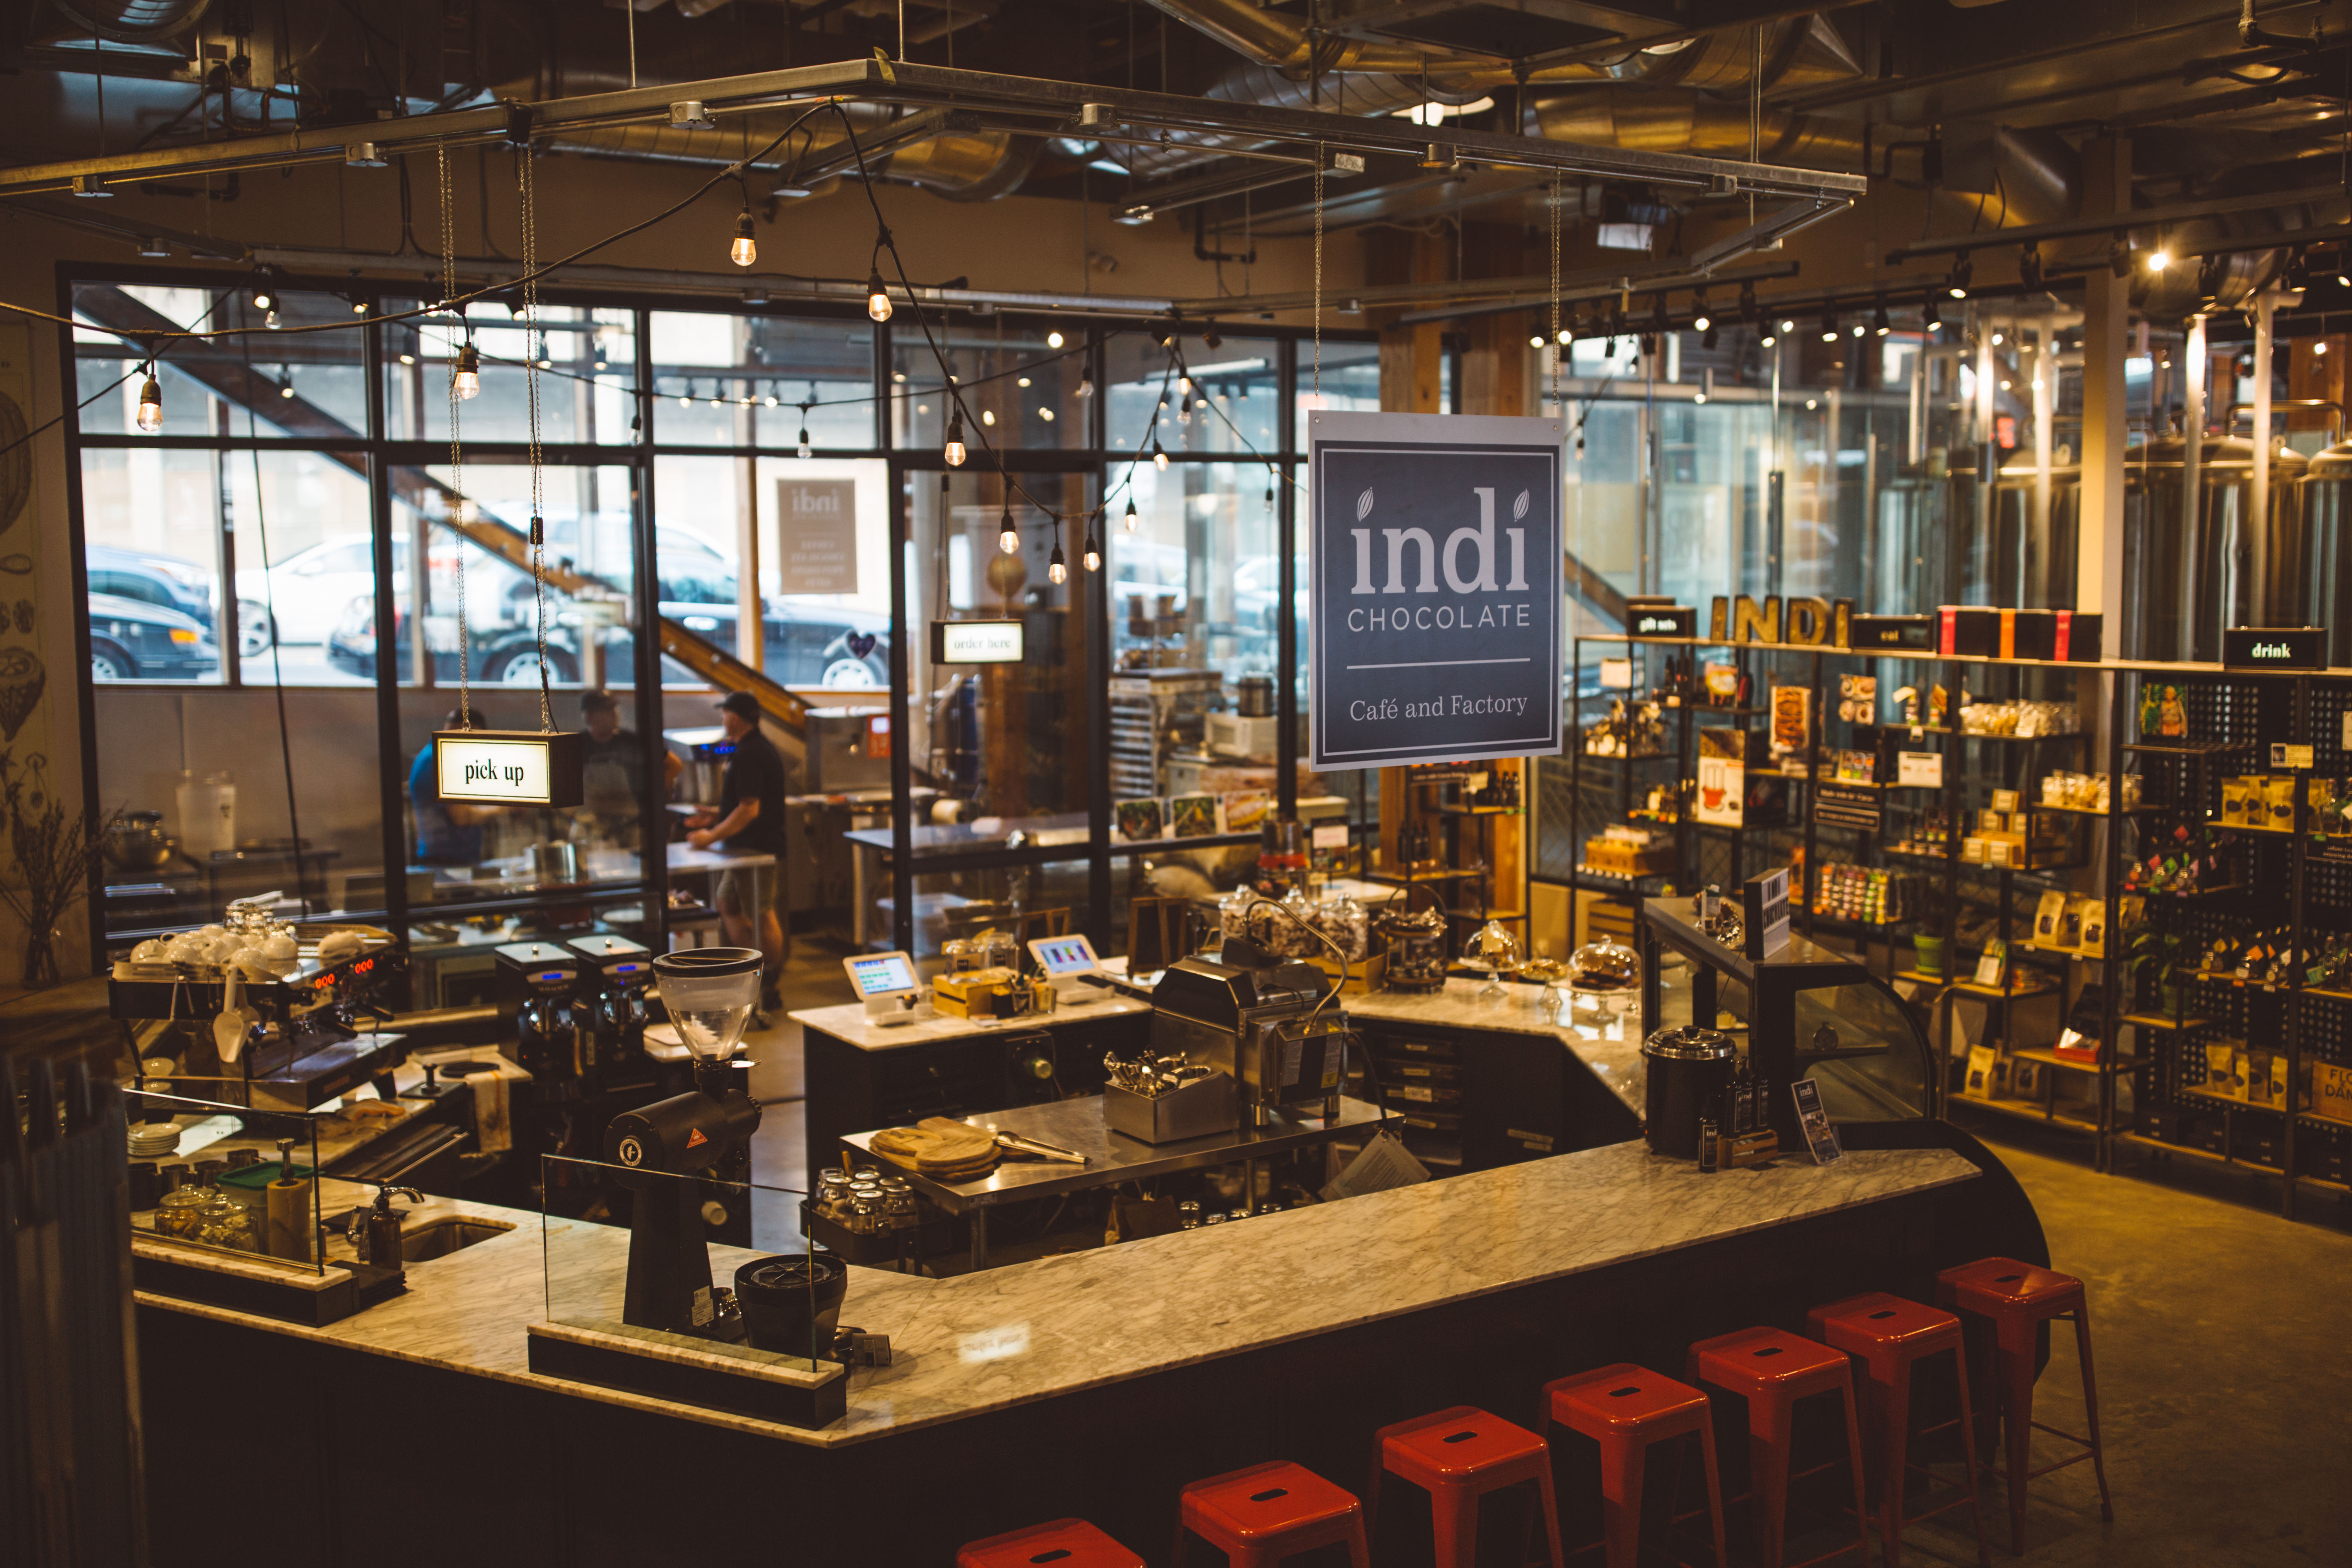 Who doesn't love chocolate? Here at Seattle Refined, we sure do! So naturally, when we were given the opportunity to head to Indi Chocolate to see exactly how it's made from bean to bar, we couldn't pass it up! (Image: Ryan McBoyle / Seattle Refined)